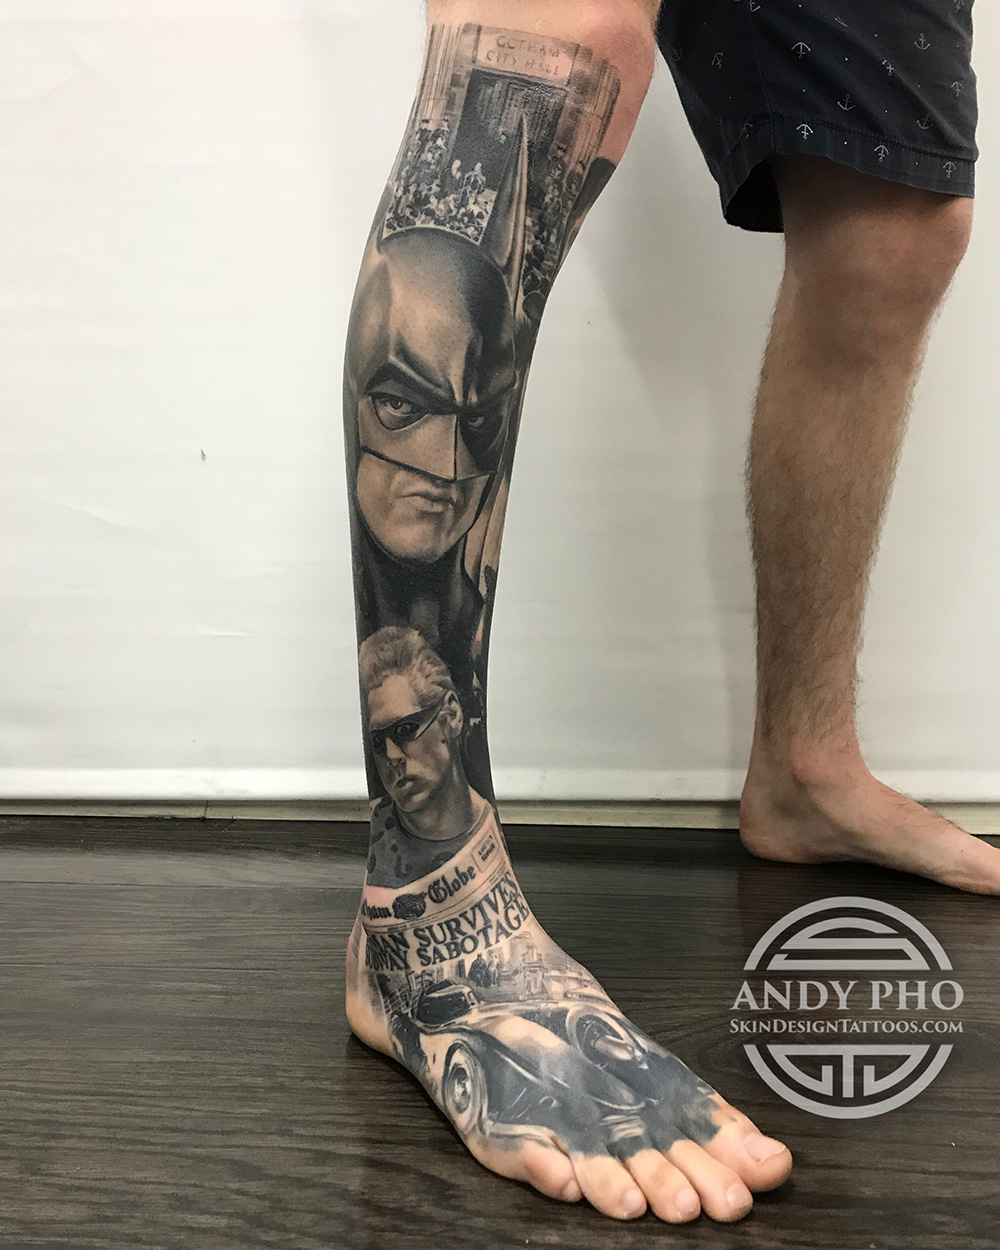 Andy Pho Batman 1989 2 tattoo.JPG